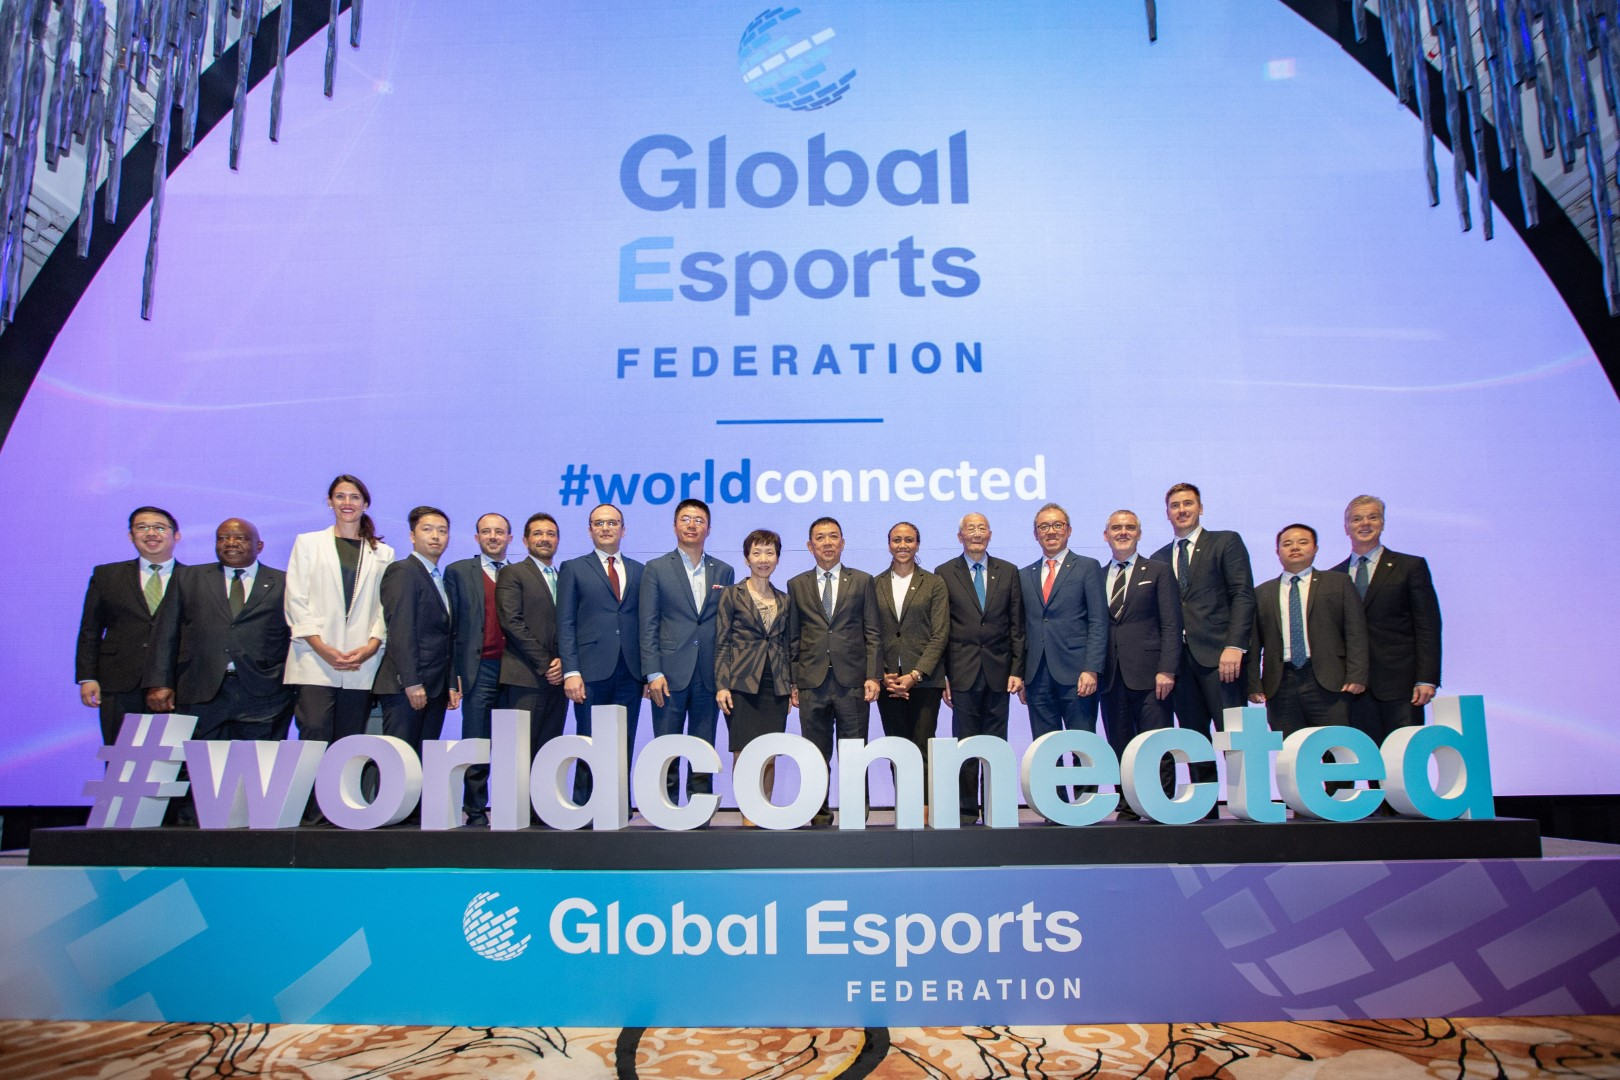 Global Esports Federation announces partnership with Commonwealth Games